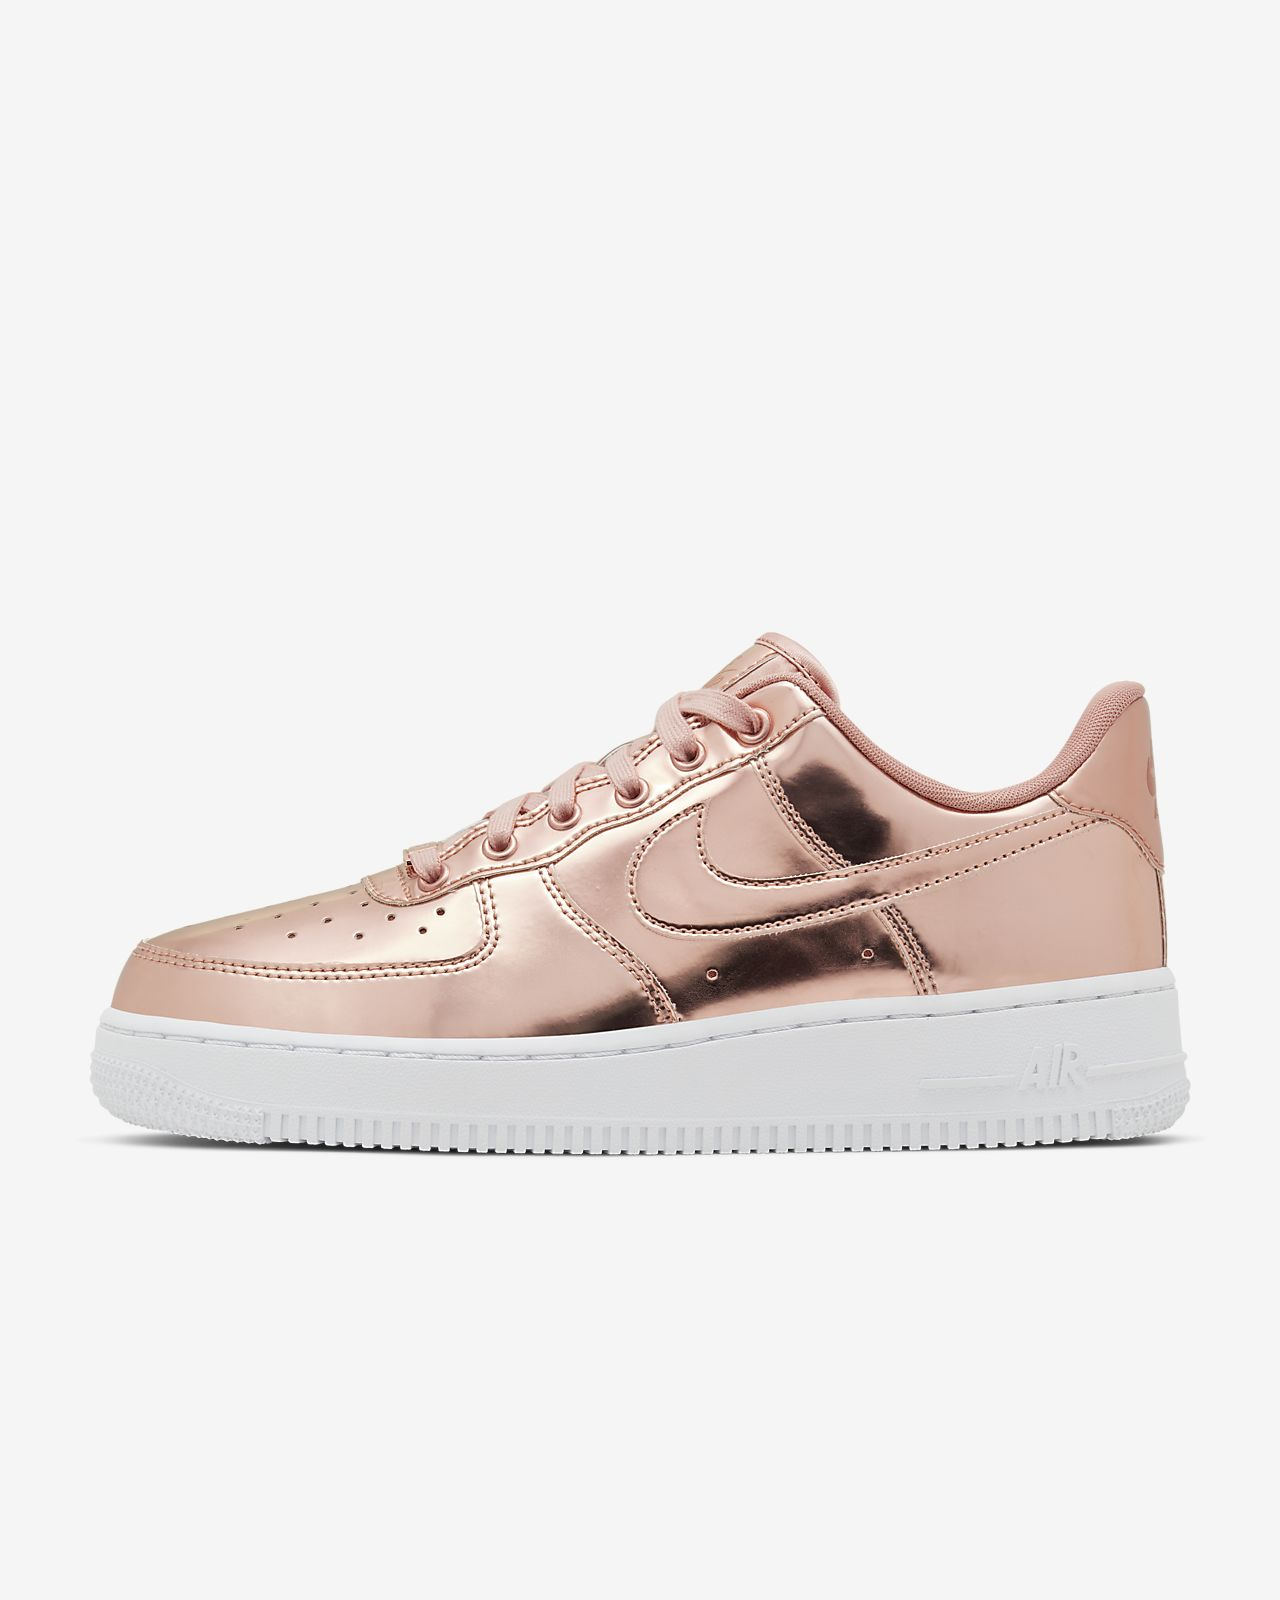 nike air force 1 femme couleur rose